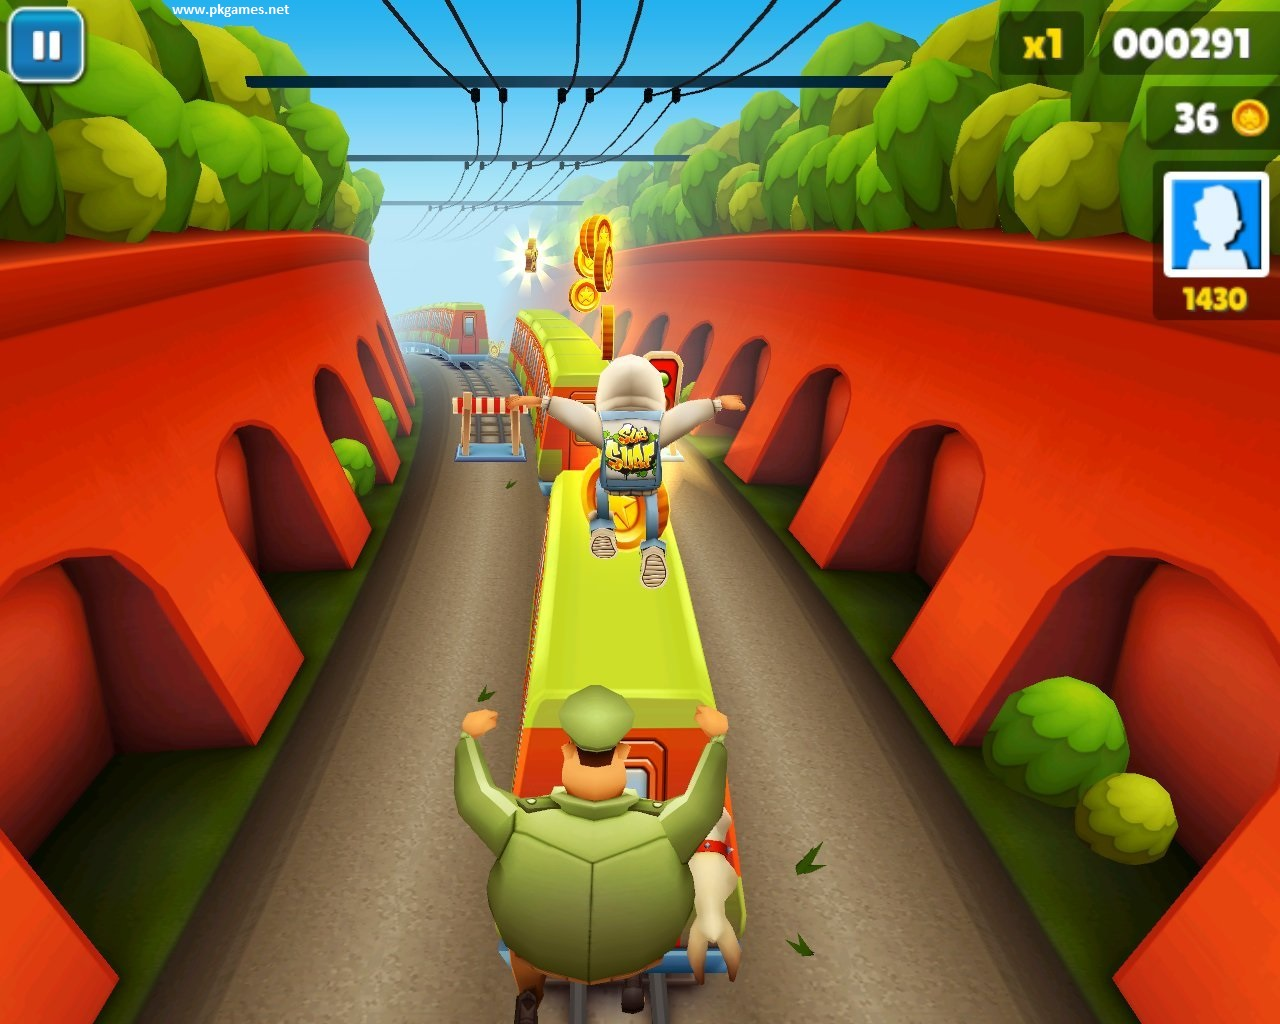 Free Download PC Games and Software: Subway Surfers PC ...